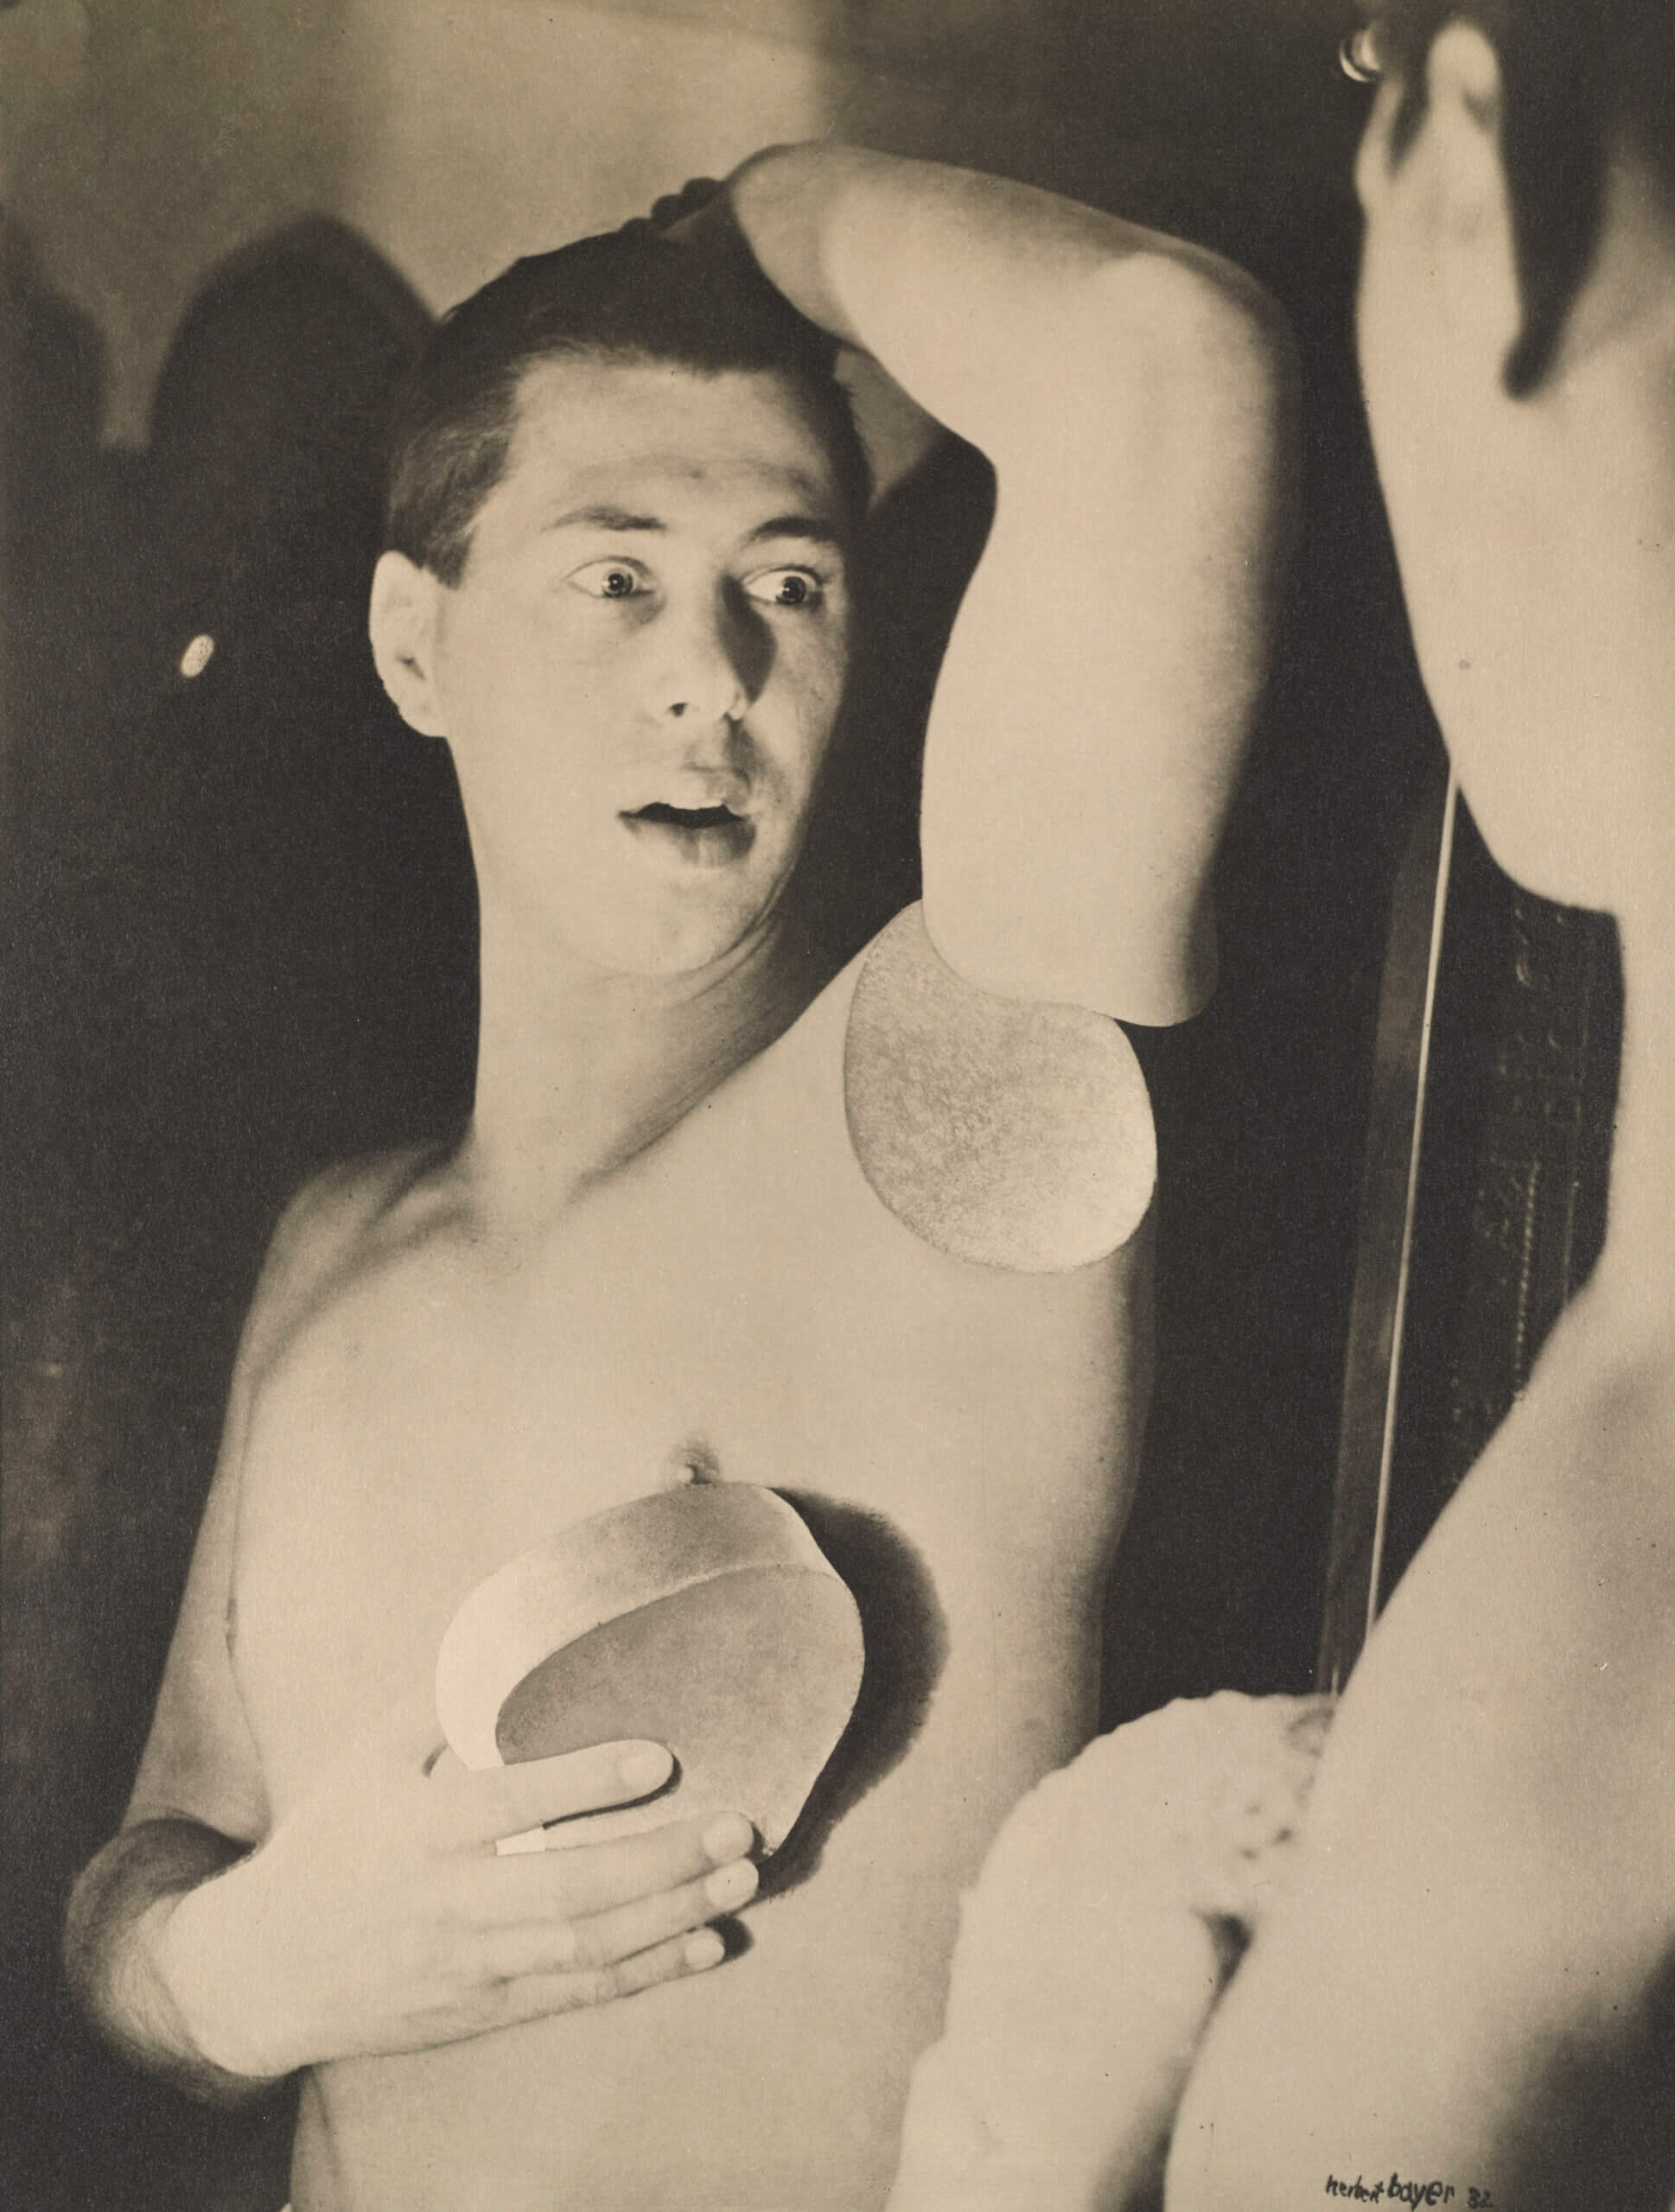 Herbert Bayer. Humainement impossible (autoportrait), 1932. The Museum of Modern Art, New York. Collection Thomas Walther